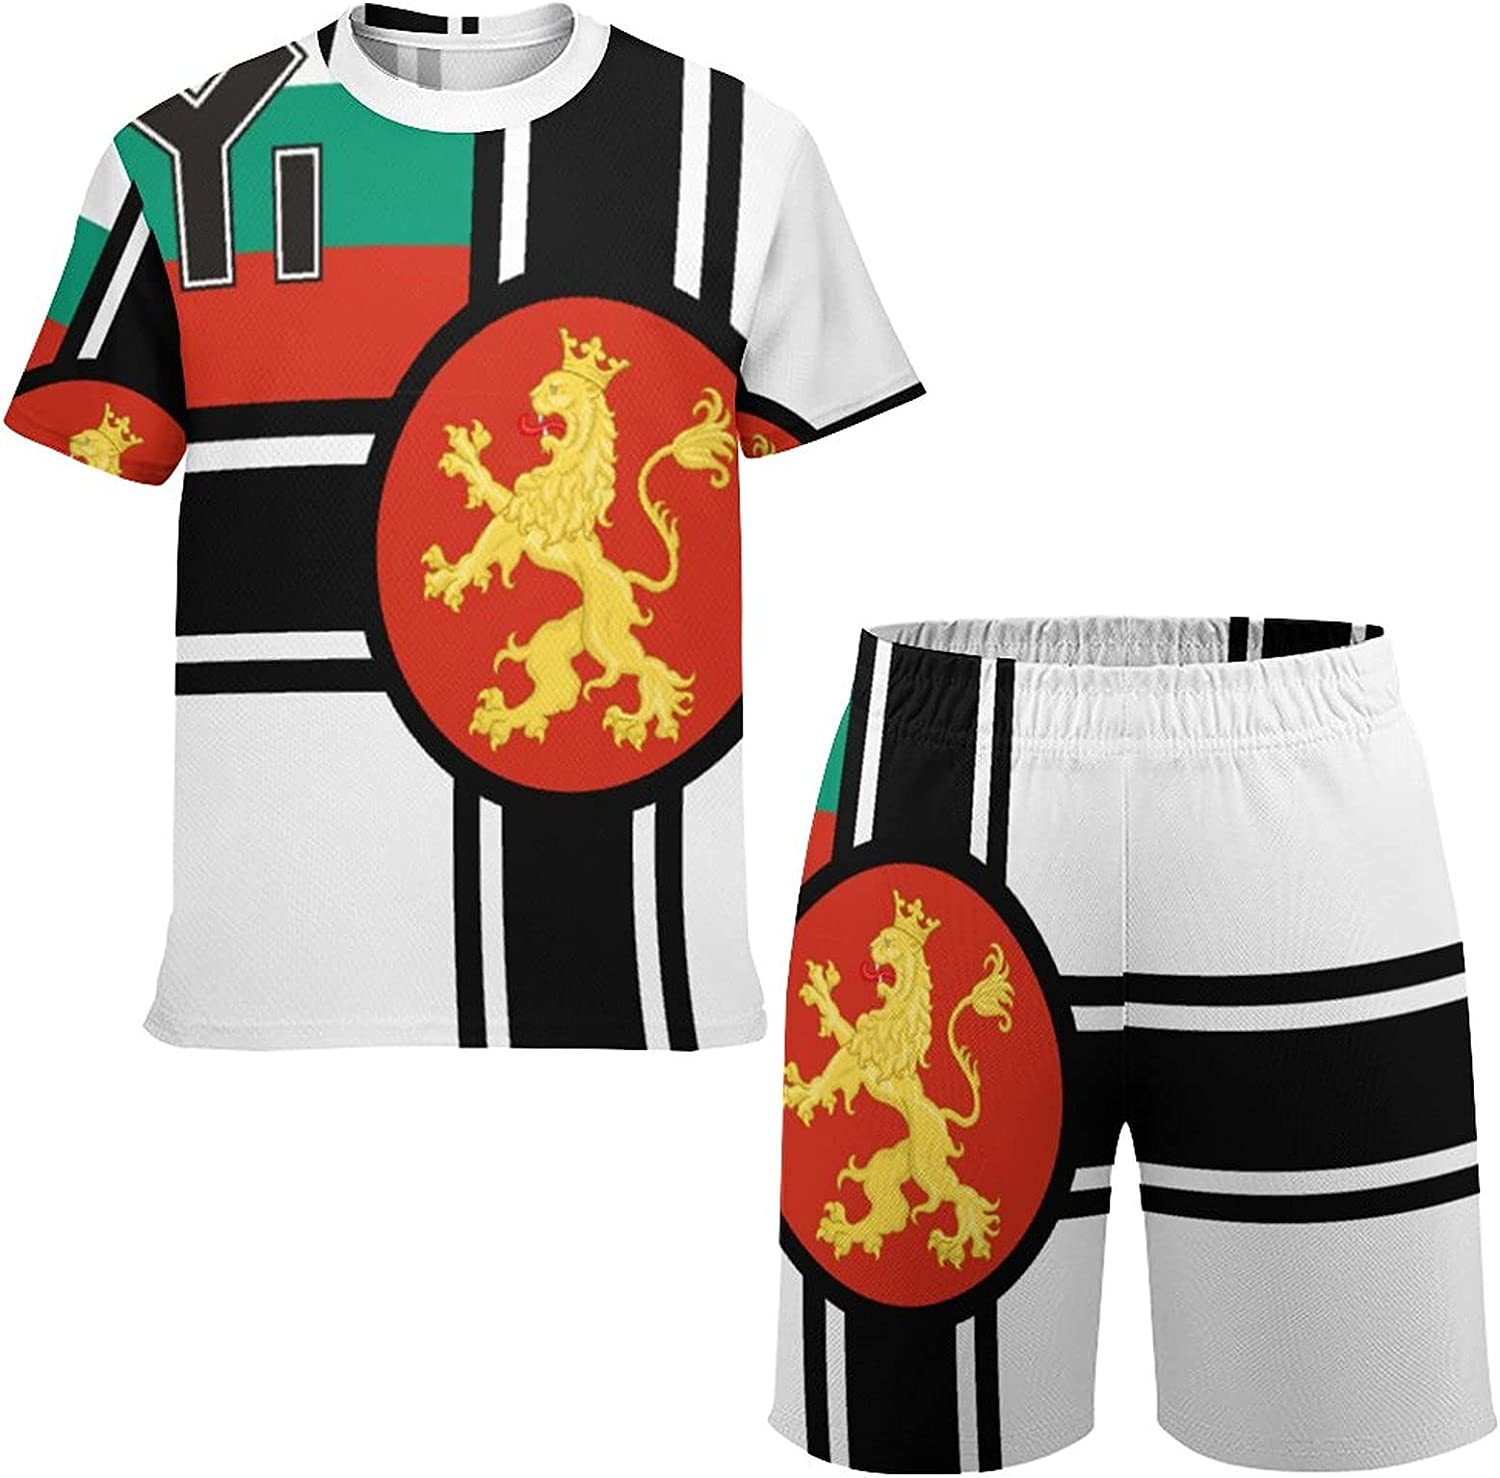 MAIPHUONGANH Trinidad and Tobago Flag Youth Casual Sportswear T-Shirt and Shorts Running Jogging Athletic Sports Suit